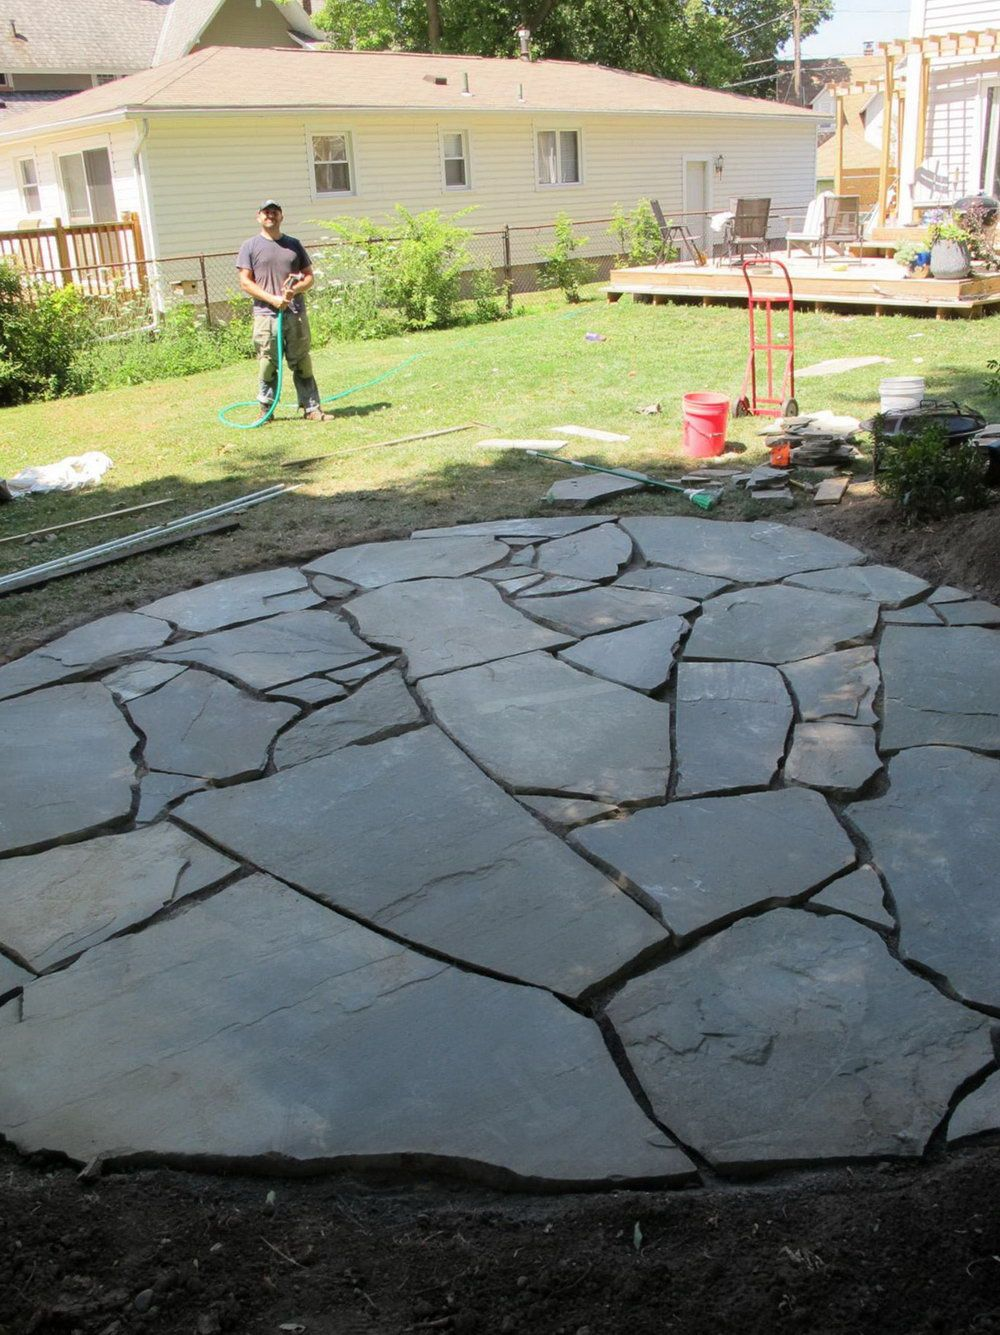 How To Lay Patio Stones On Uneven Ground - Patio Ideas on Unlevel Backyard Ideas id=19824